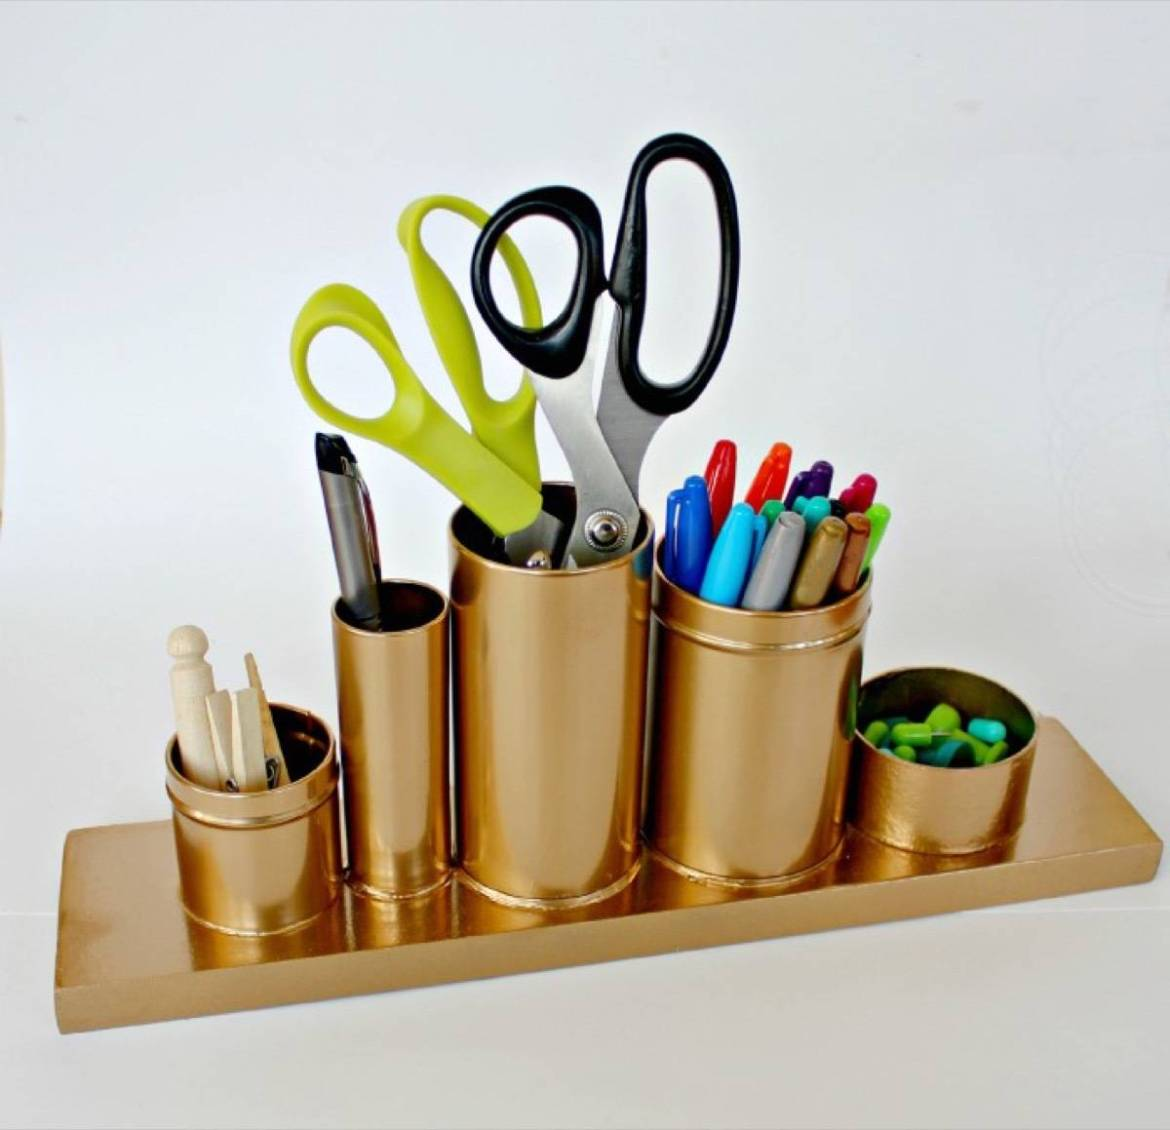 Gold and glam knockoff | 72 Organization Tips and Projects for Every Space in Your Home